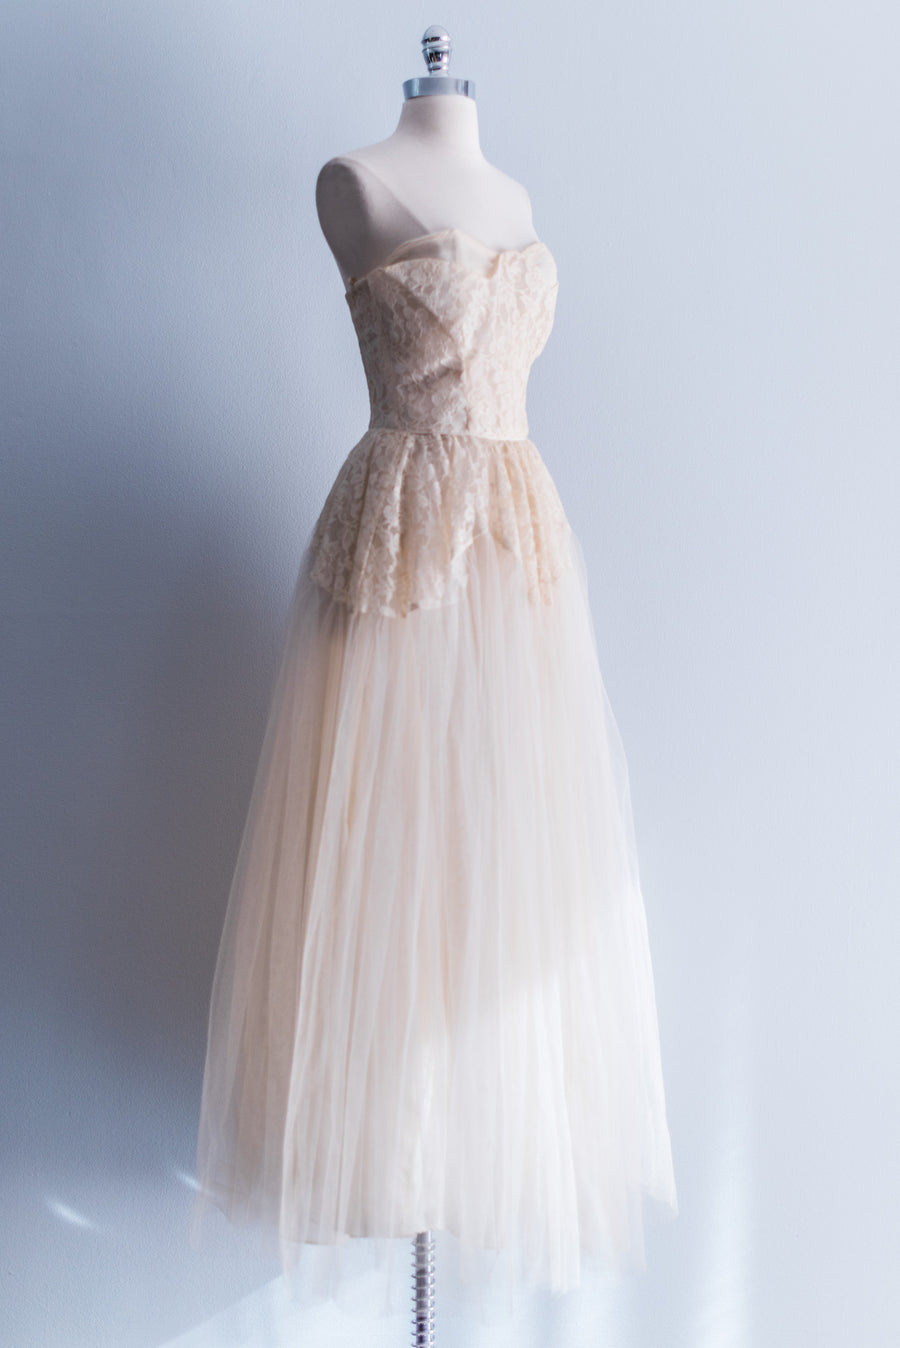 [SOLD] Scalloped Cream Lace and Tulle Gown (Full-Length)